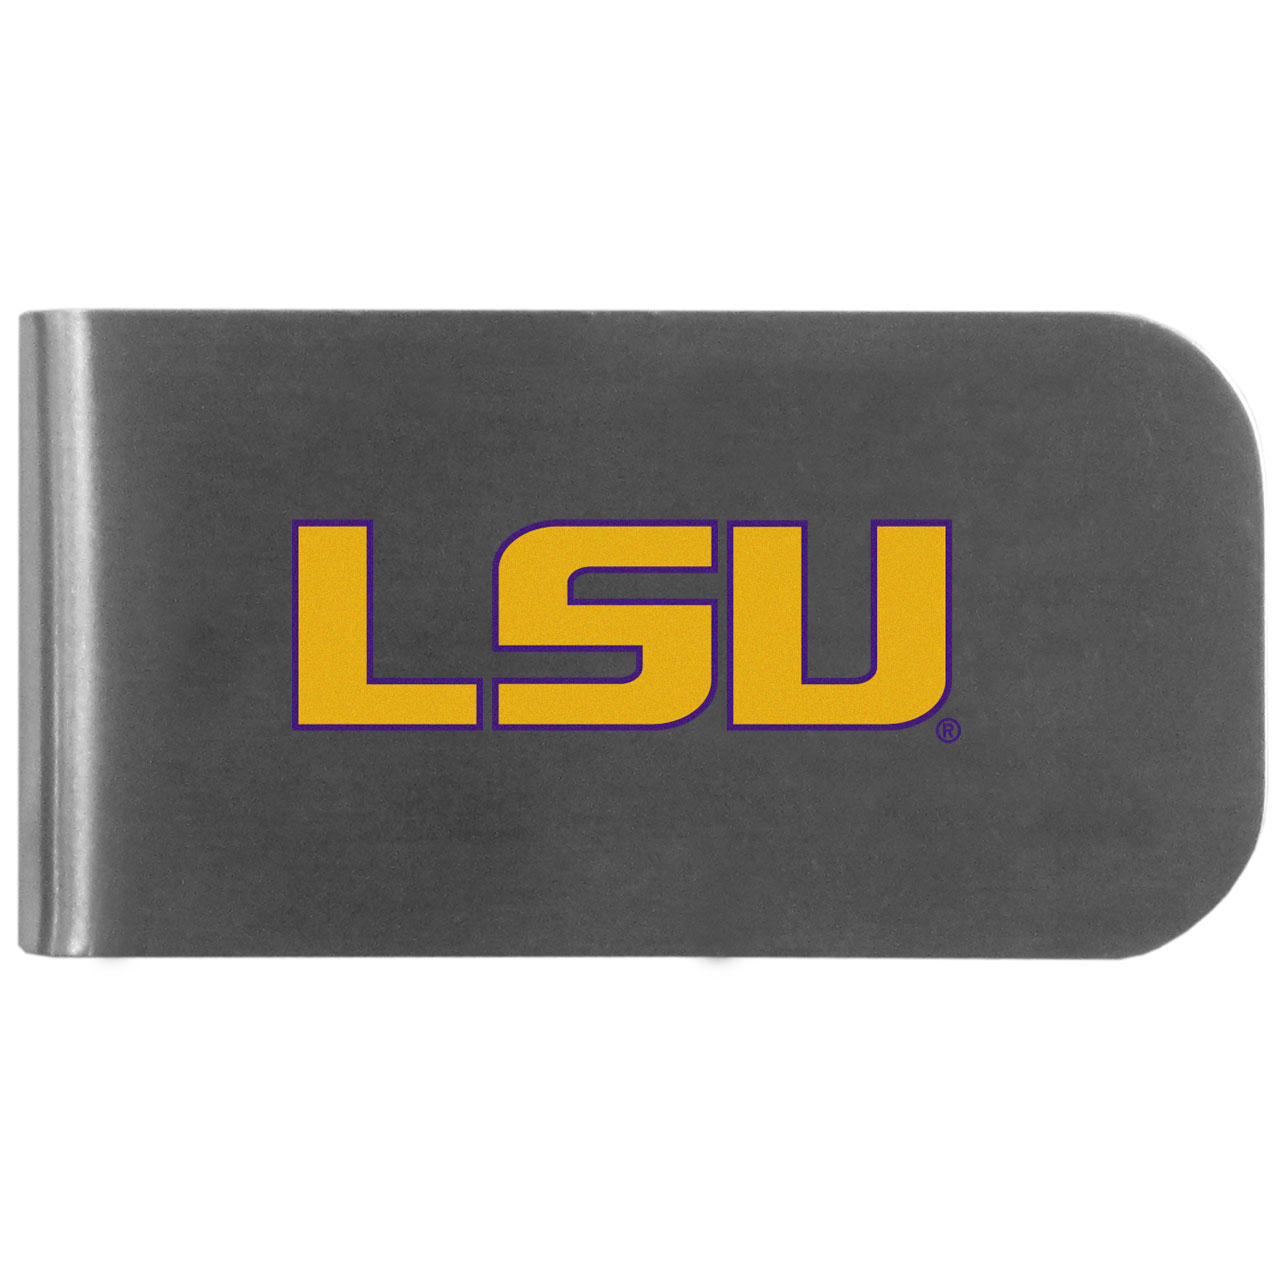 LSU Tigers Logo Bottle Opener Money Clip - This unique money clip features a classic, brushed-metal finish with a handy bottle opener feature on the back. The clip has the LSU Tigers logo expertly printed on the front of the clip.